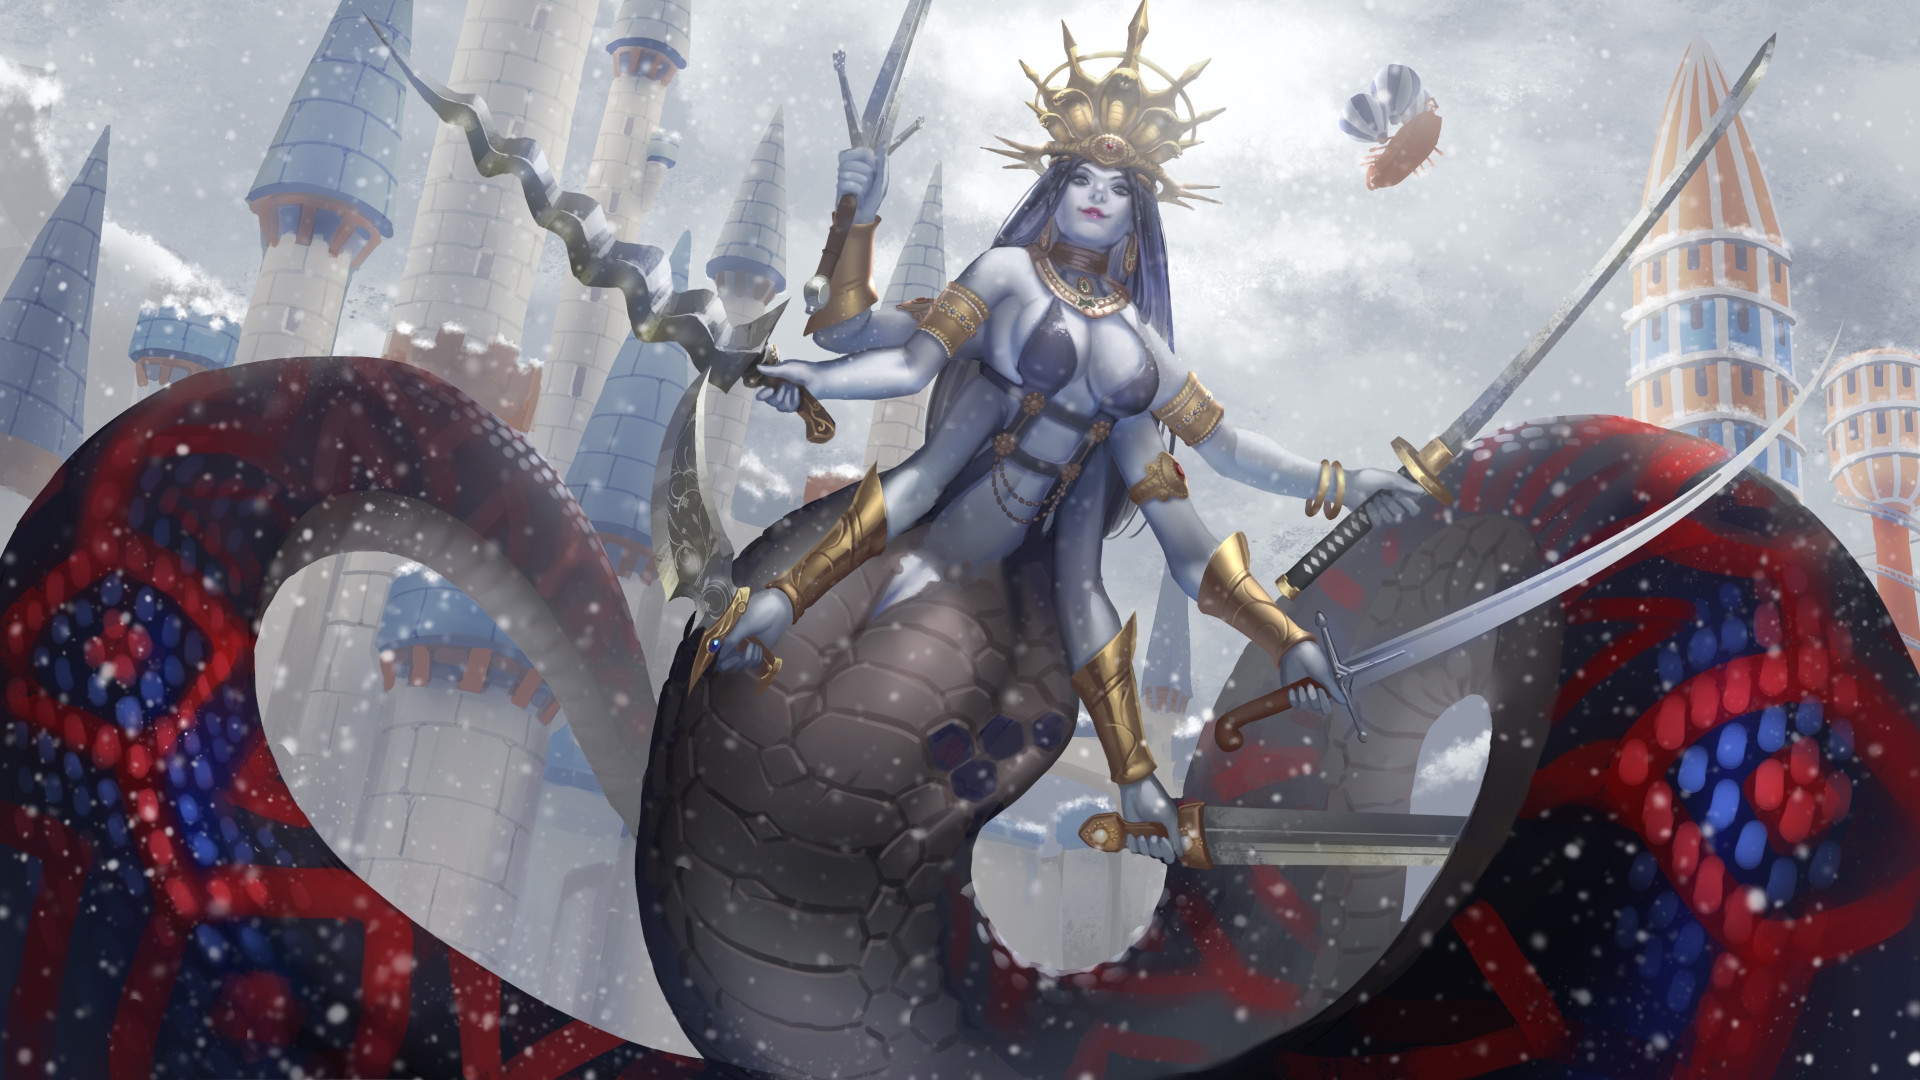 ArtStation - Naga Queen, To Hsu